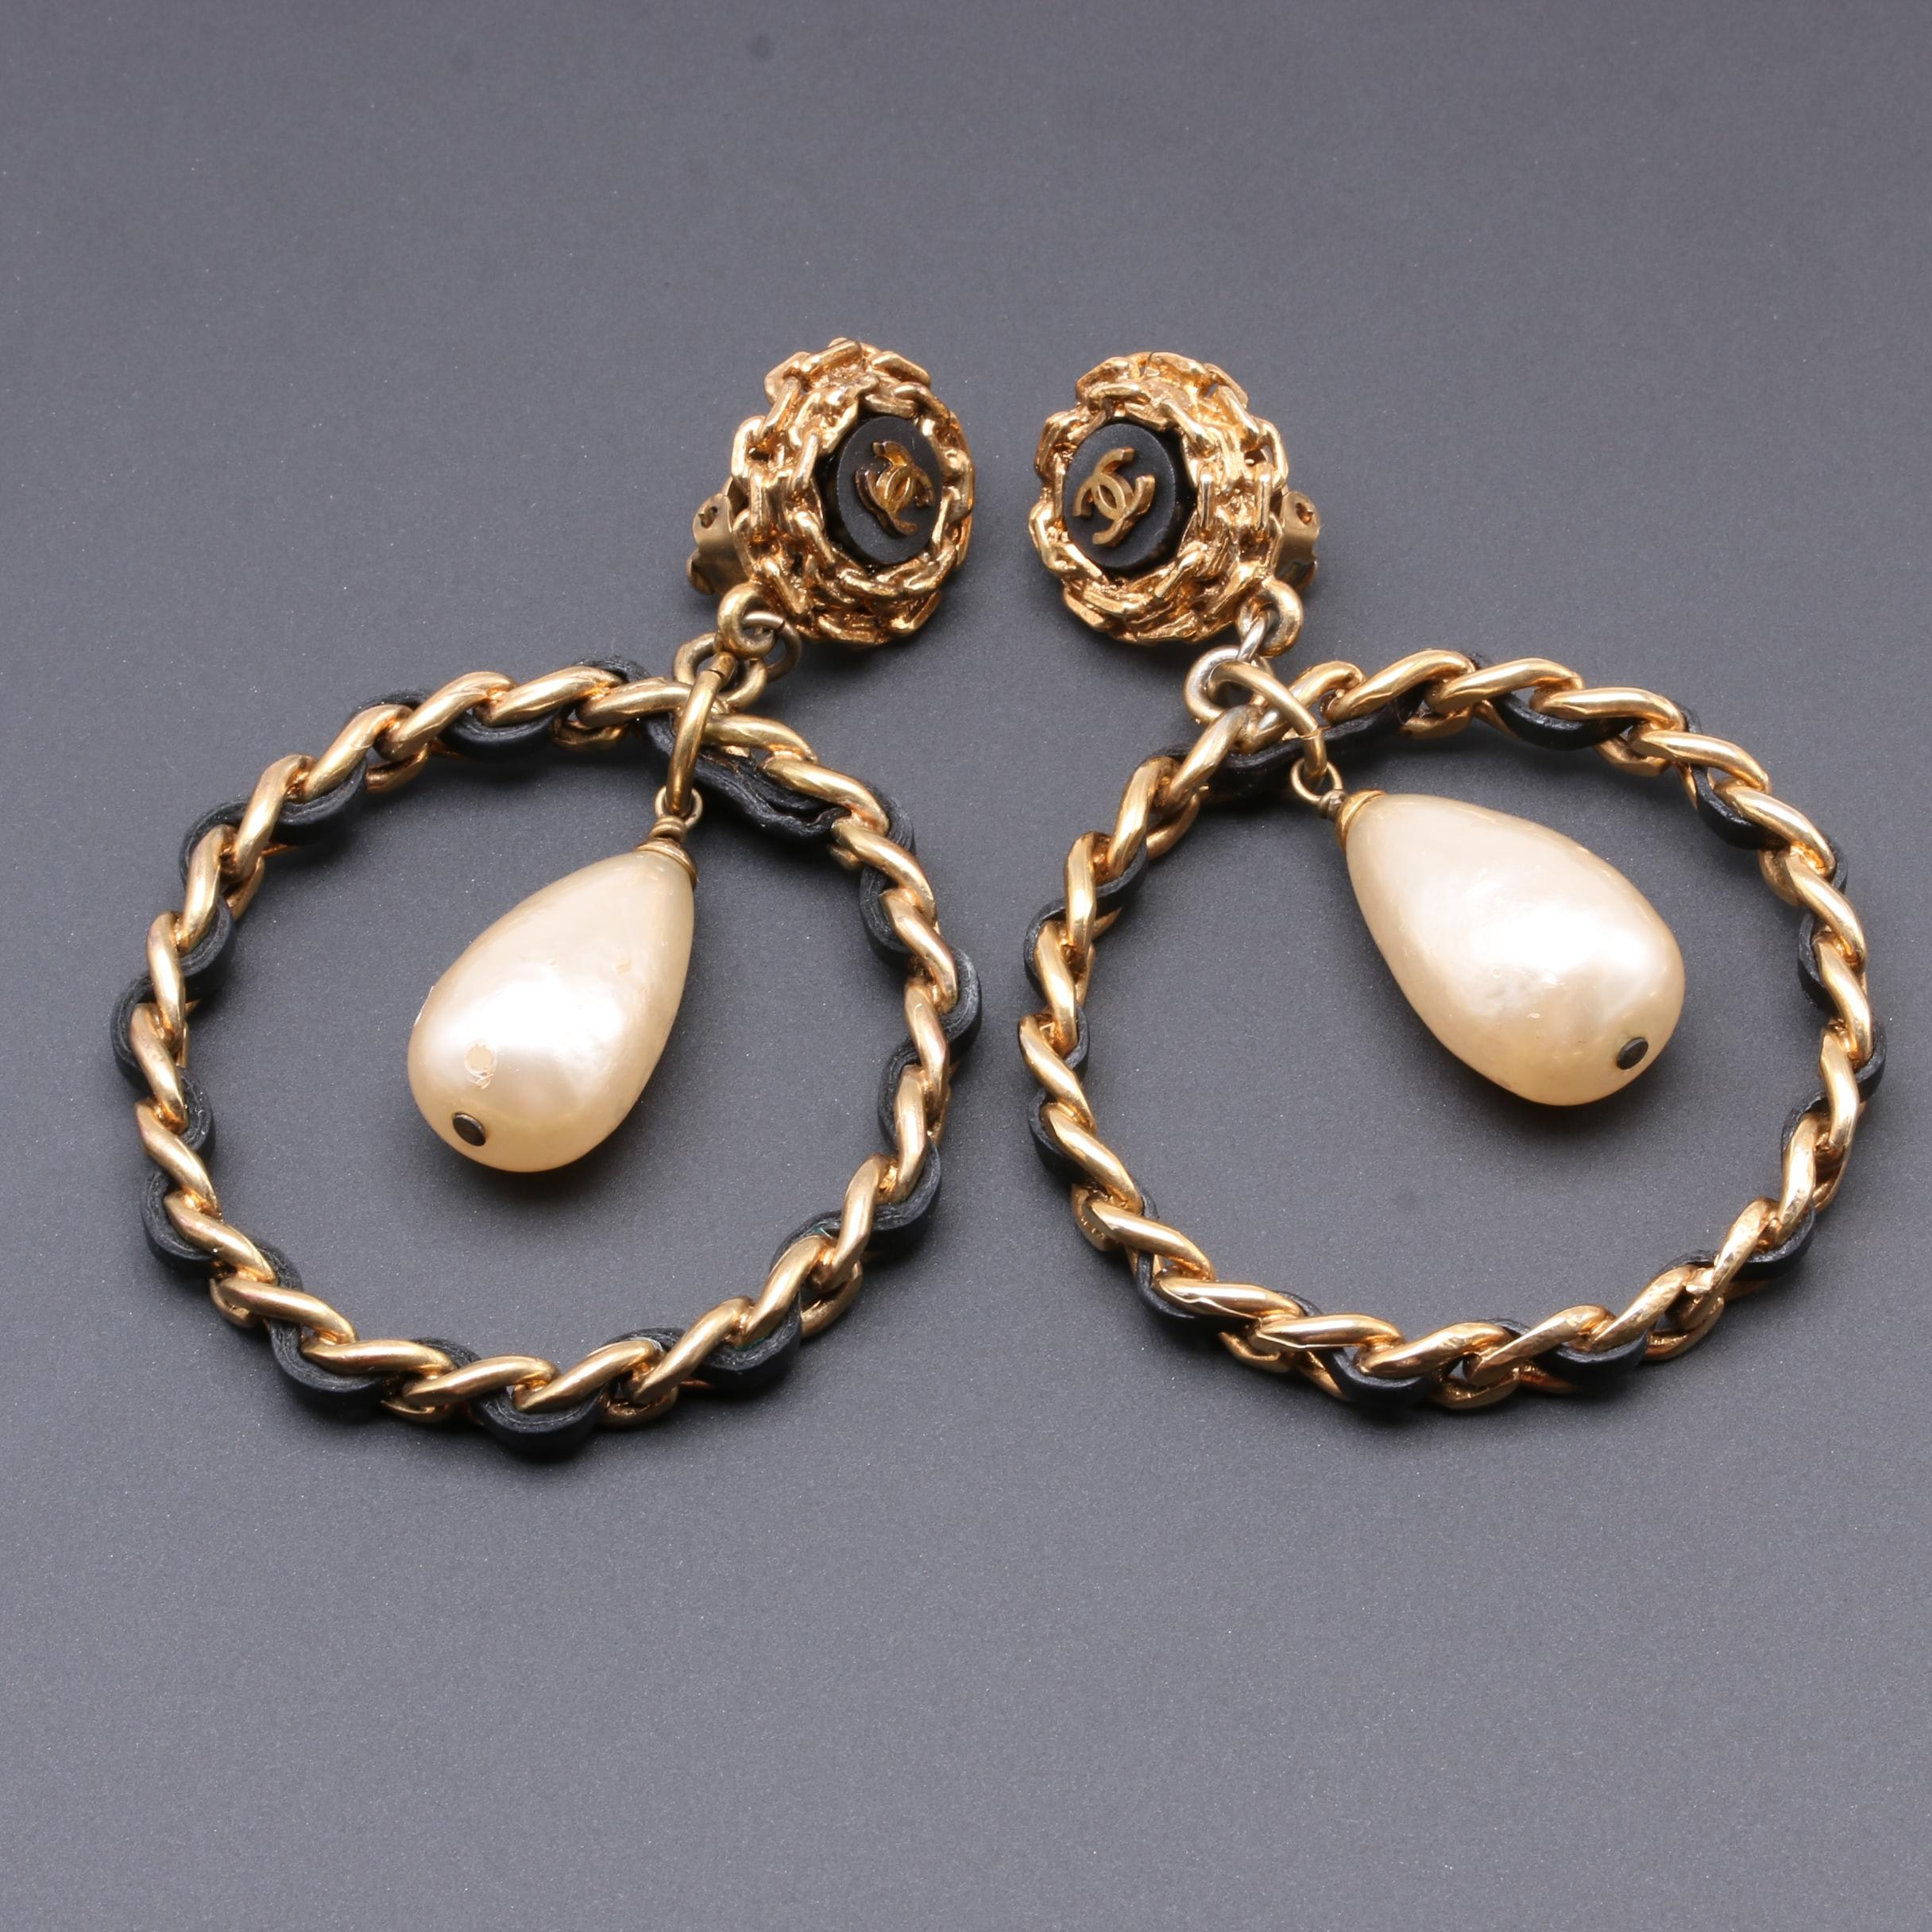 Vintage Chanel Gold Tone Leather Weave Imitation Pearl Hoop Earrings